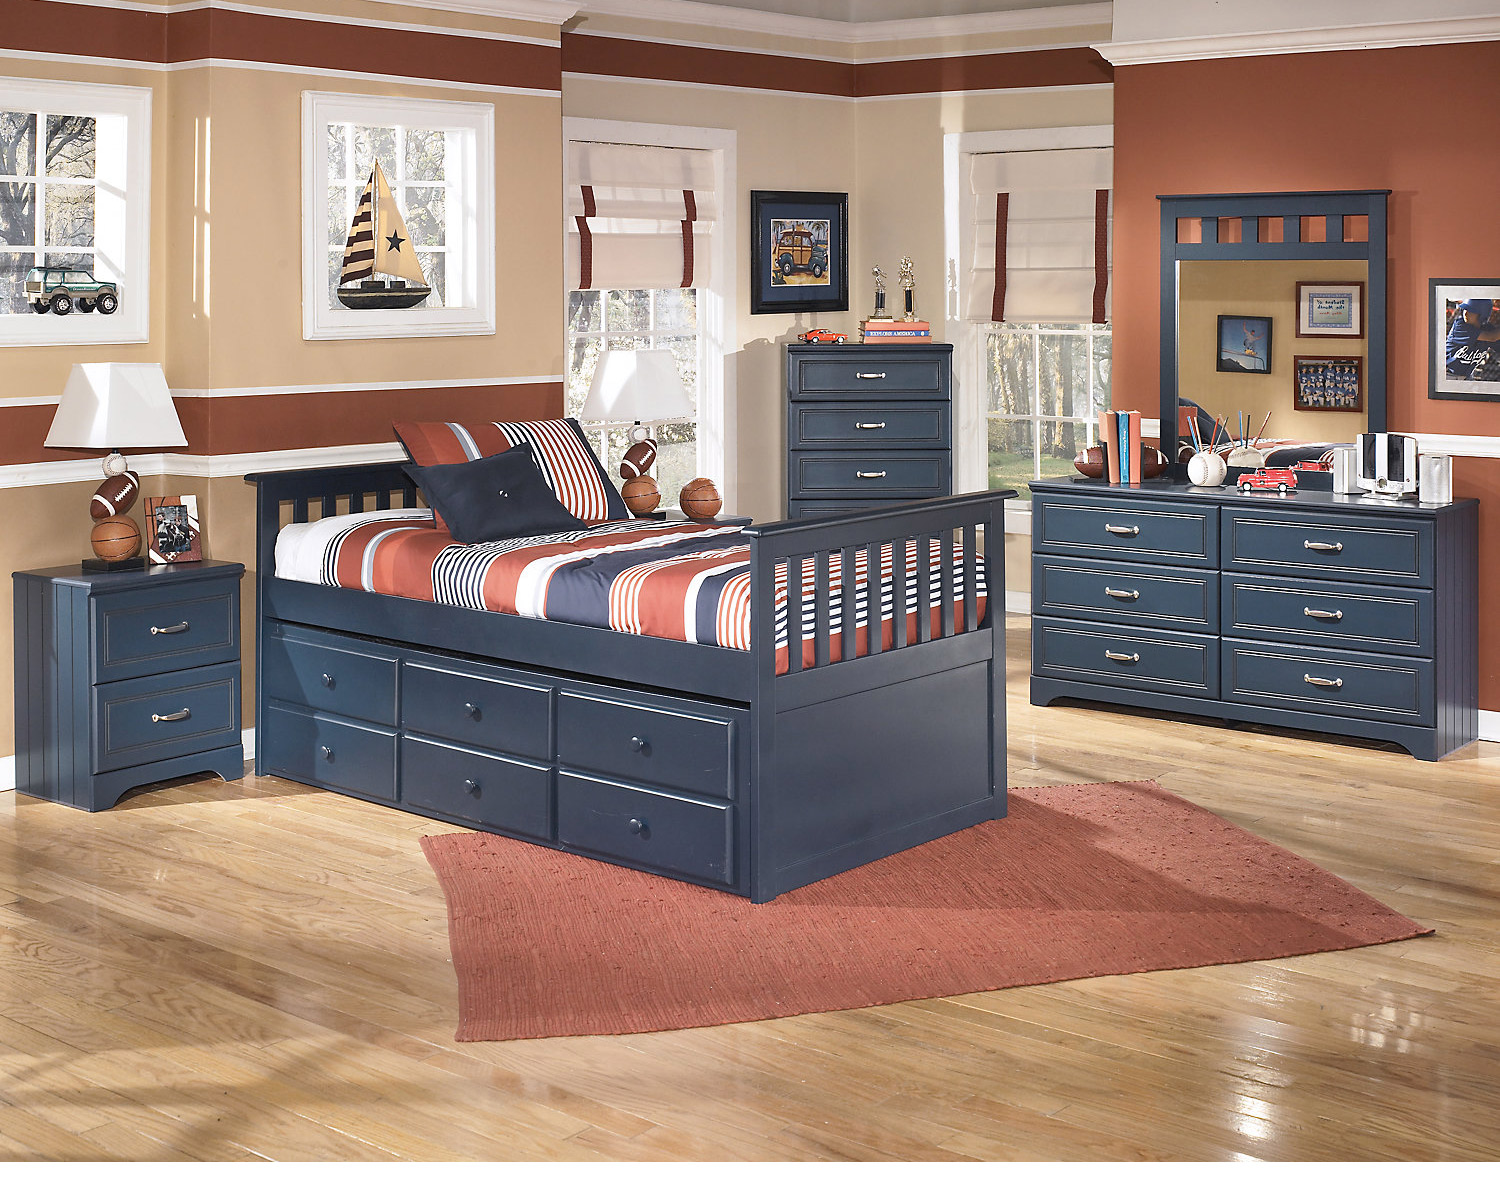 Navy Blue Furniture Nautical Themed Kids Room